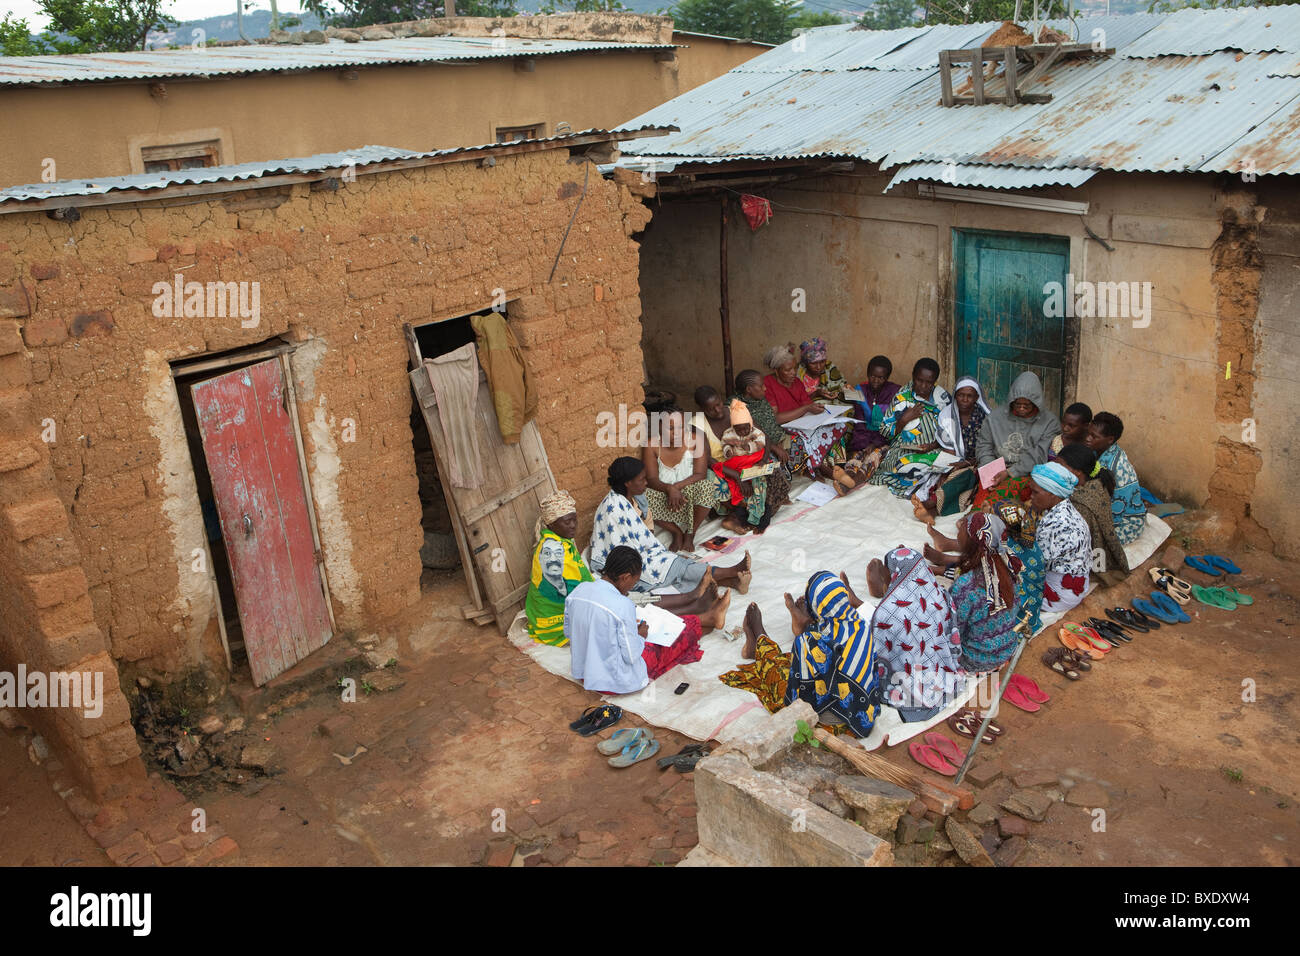 Women attend a community meeting in Iringa, Tanzania, East Africa. - Stock Image